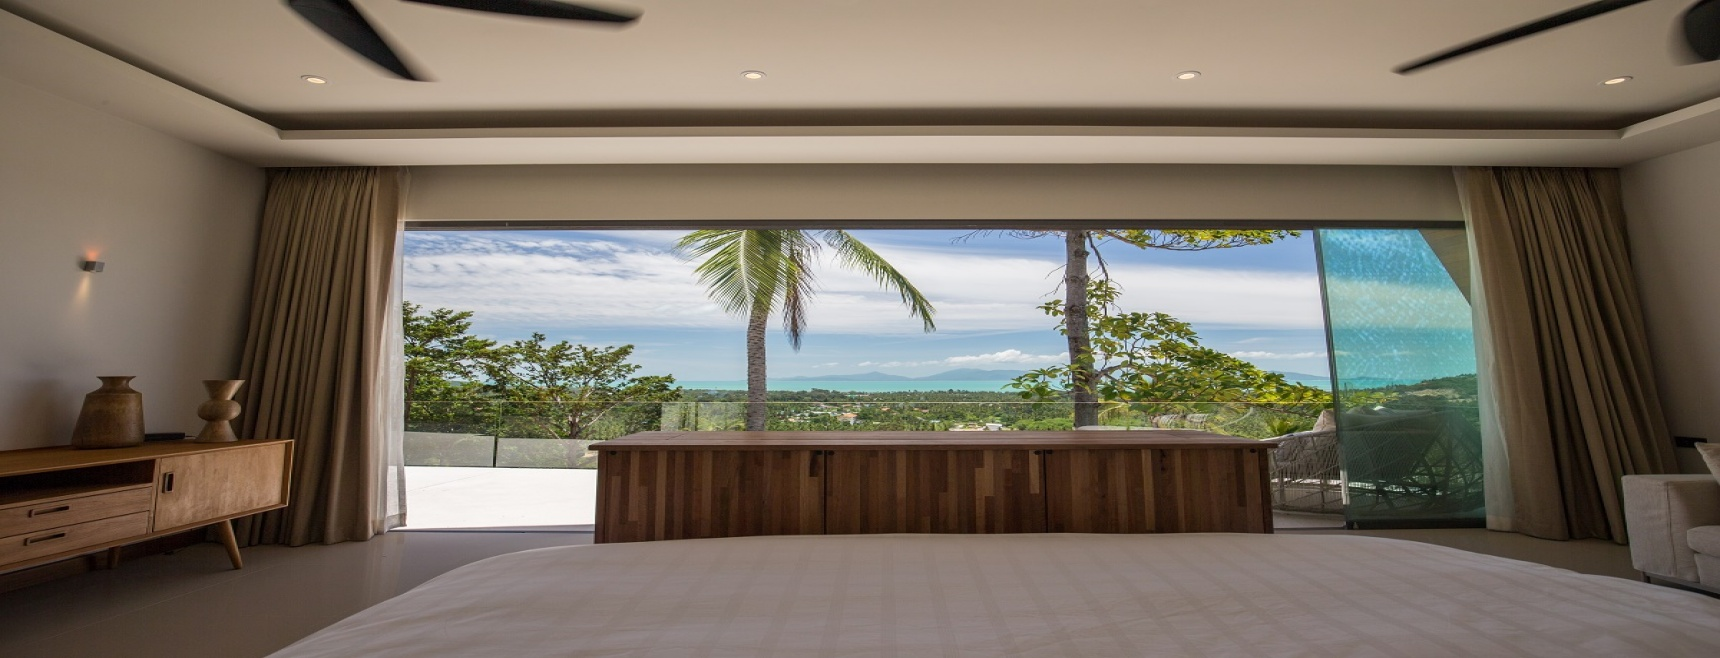 5 Bed Azur Villa With Ocean Views Koh Samui (Thai-Real.com)